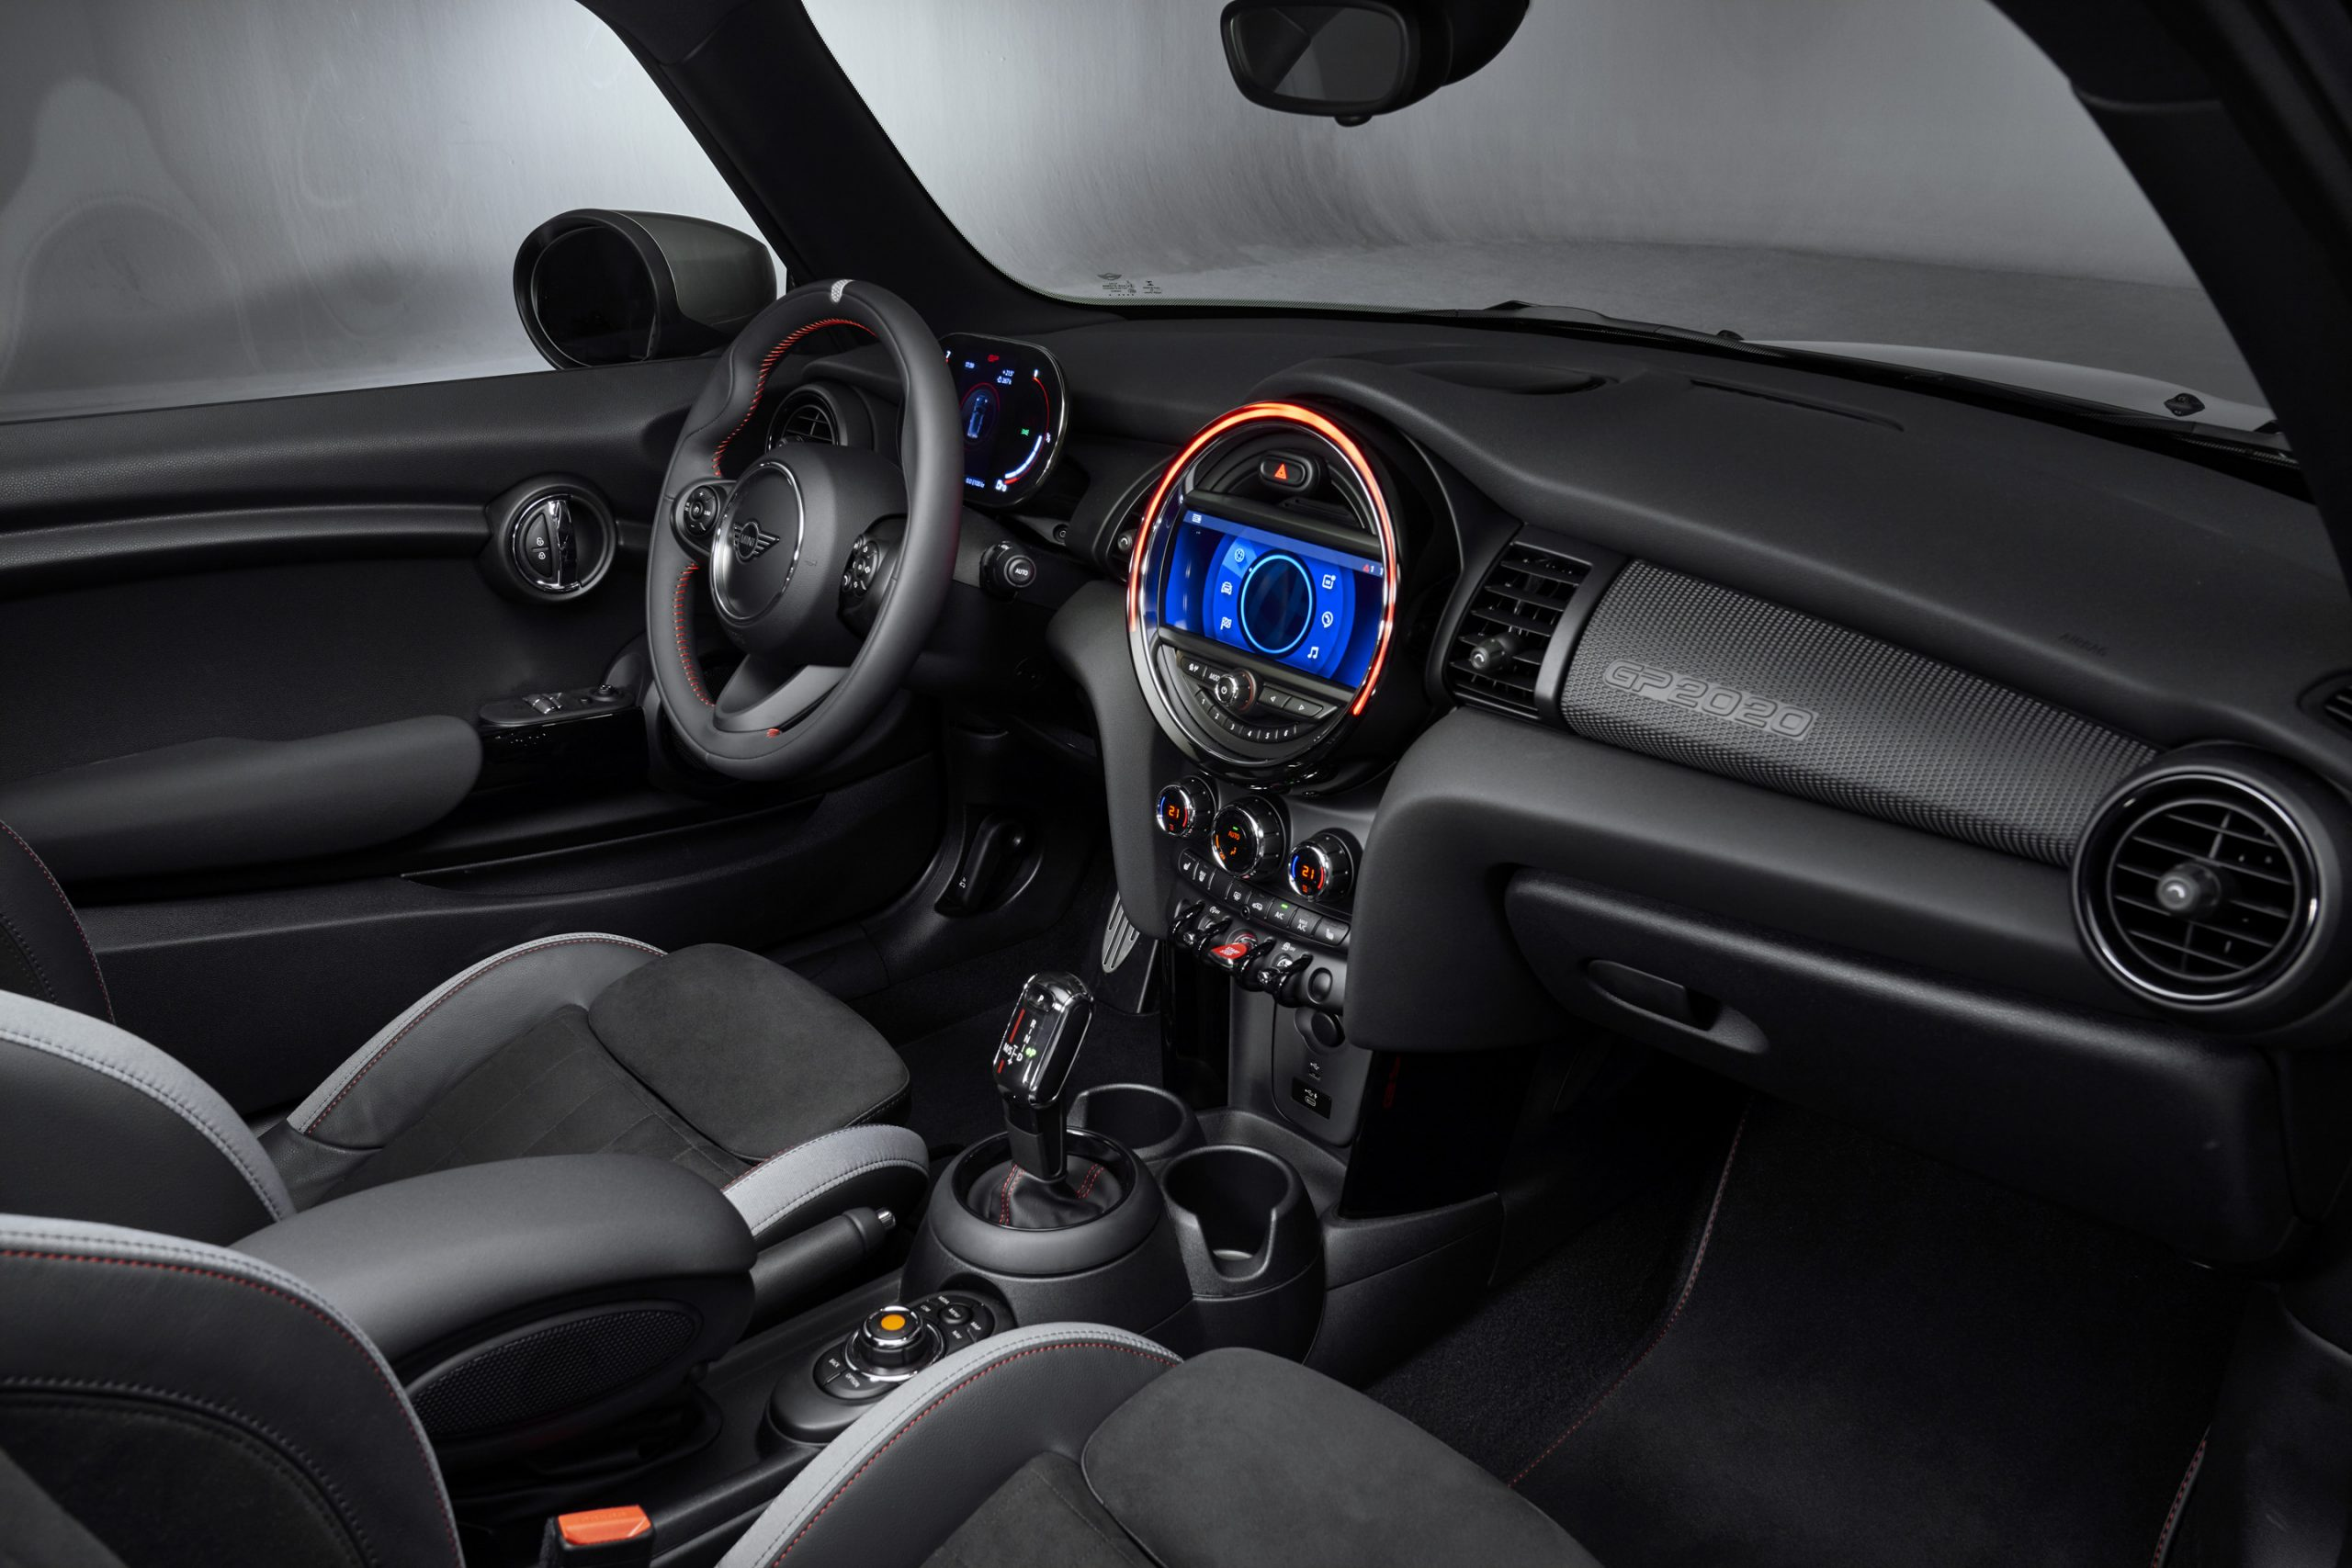 New 2020 Mini John Cooper Works GP Packs 301 HP Punch